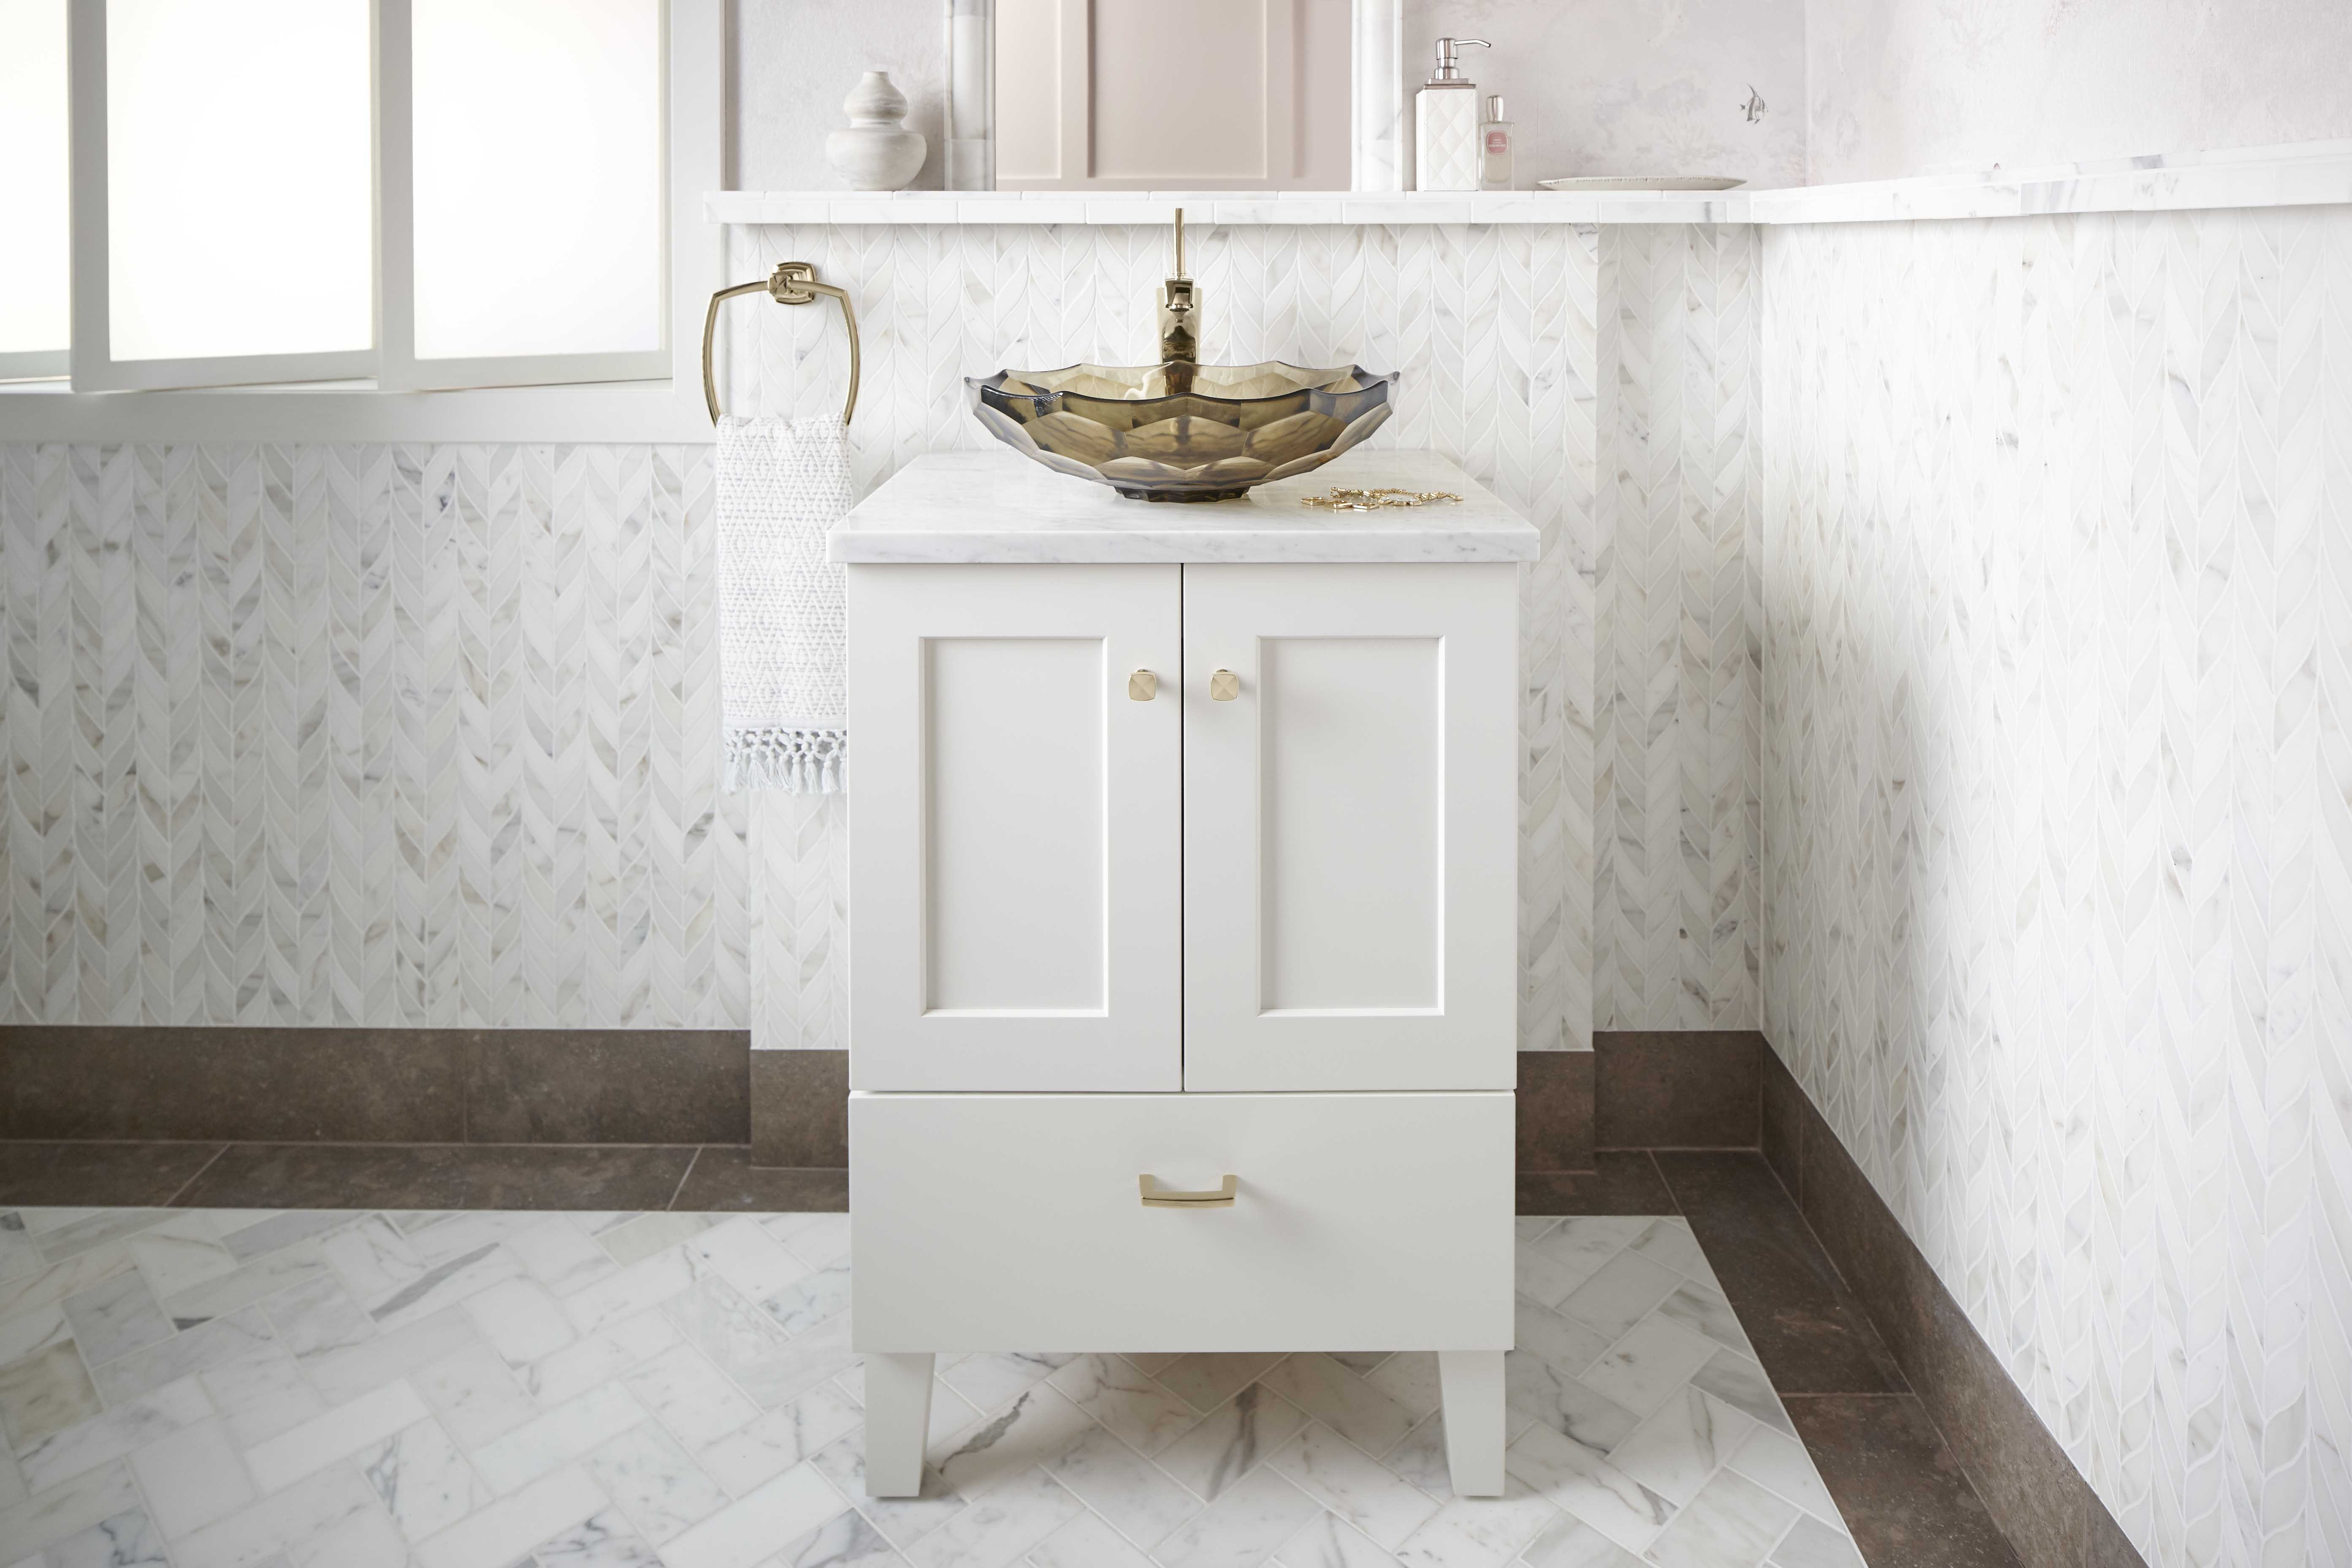 Poplin® Vanity     Margaux® single-handle faucet     Briolette™ Vessel Sink     Intricate wall and tile patterns create a striking juxtaposition for this simple white vanity.